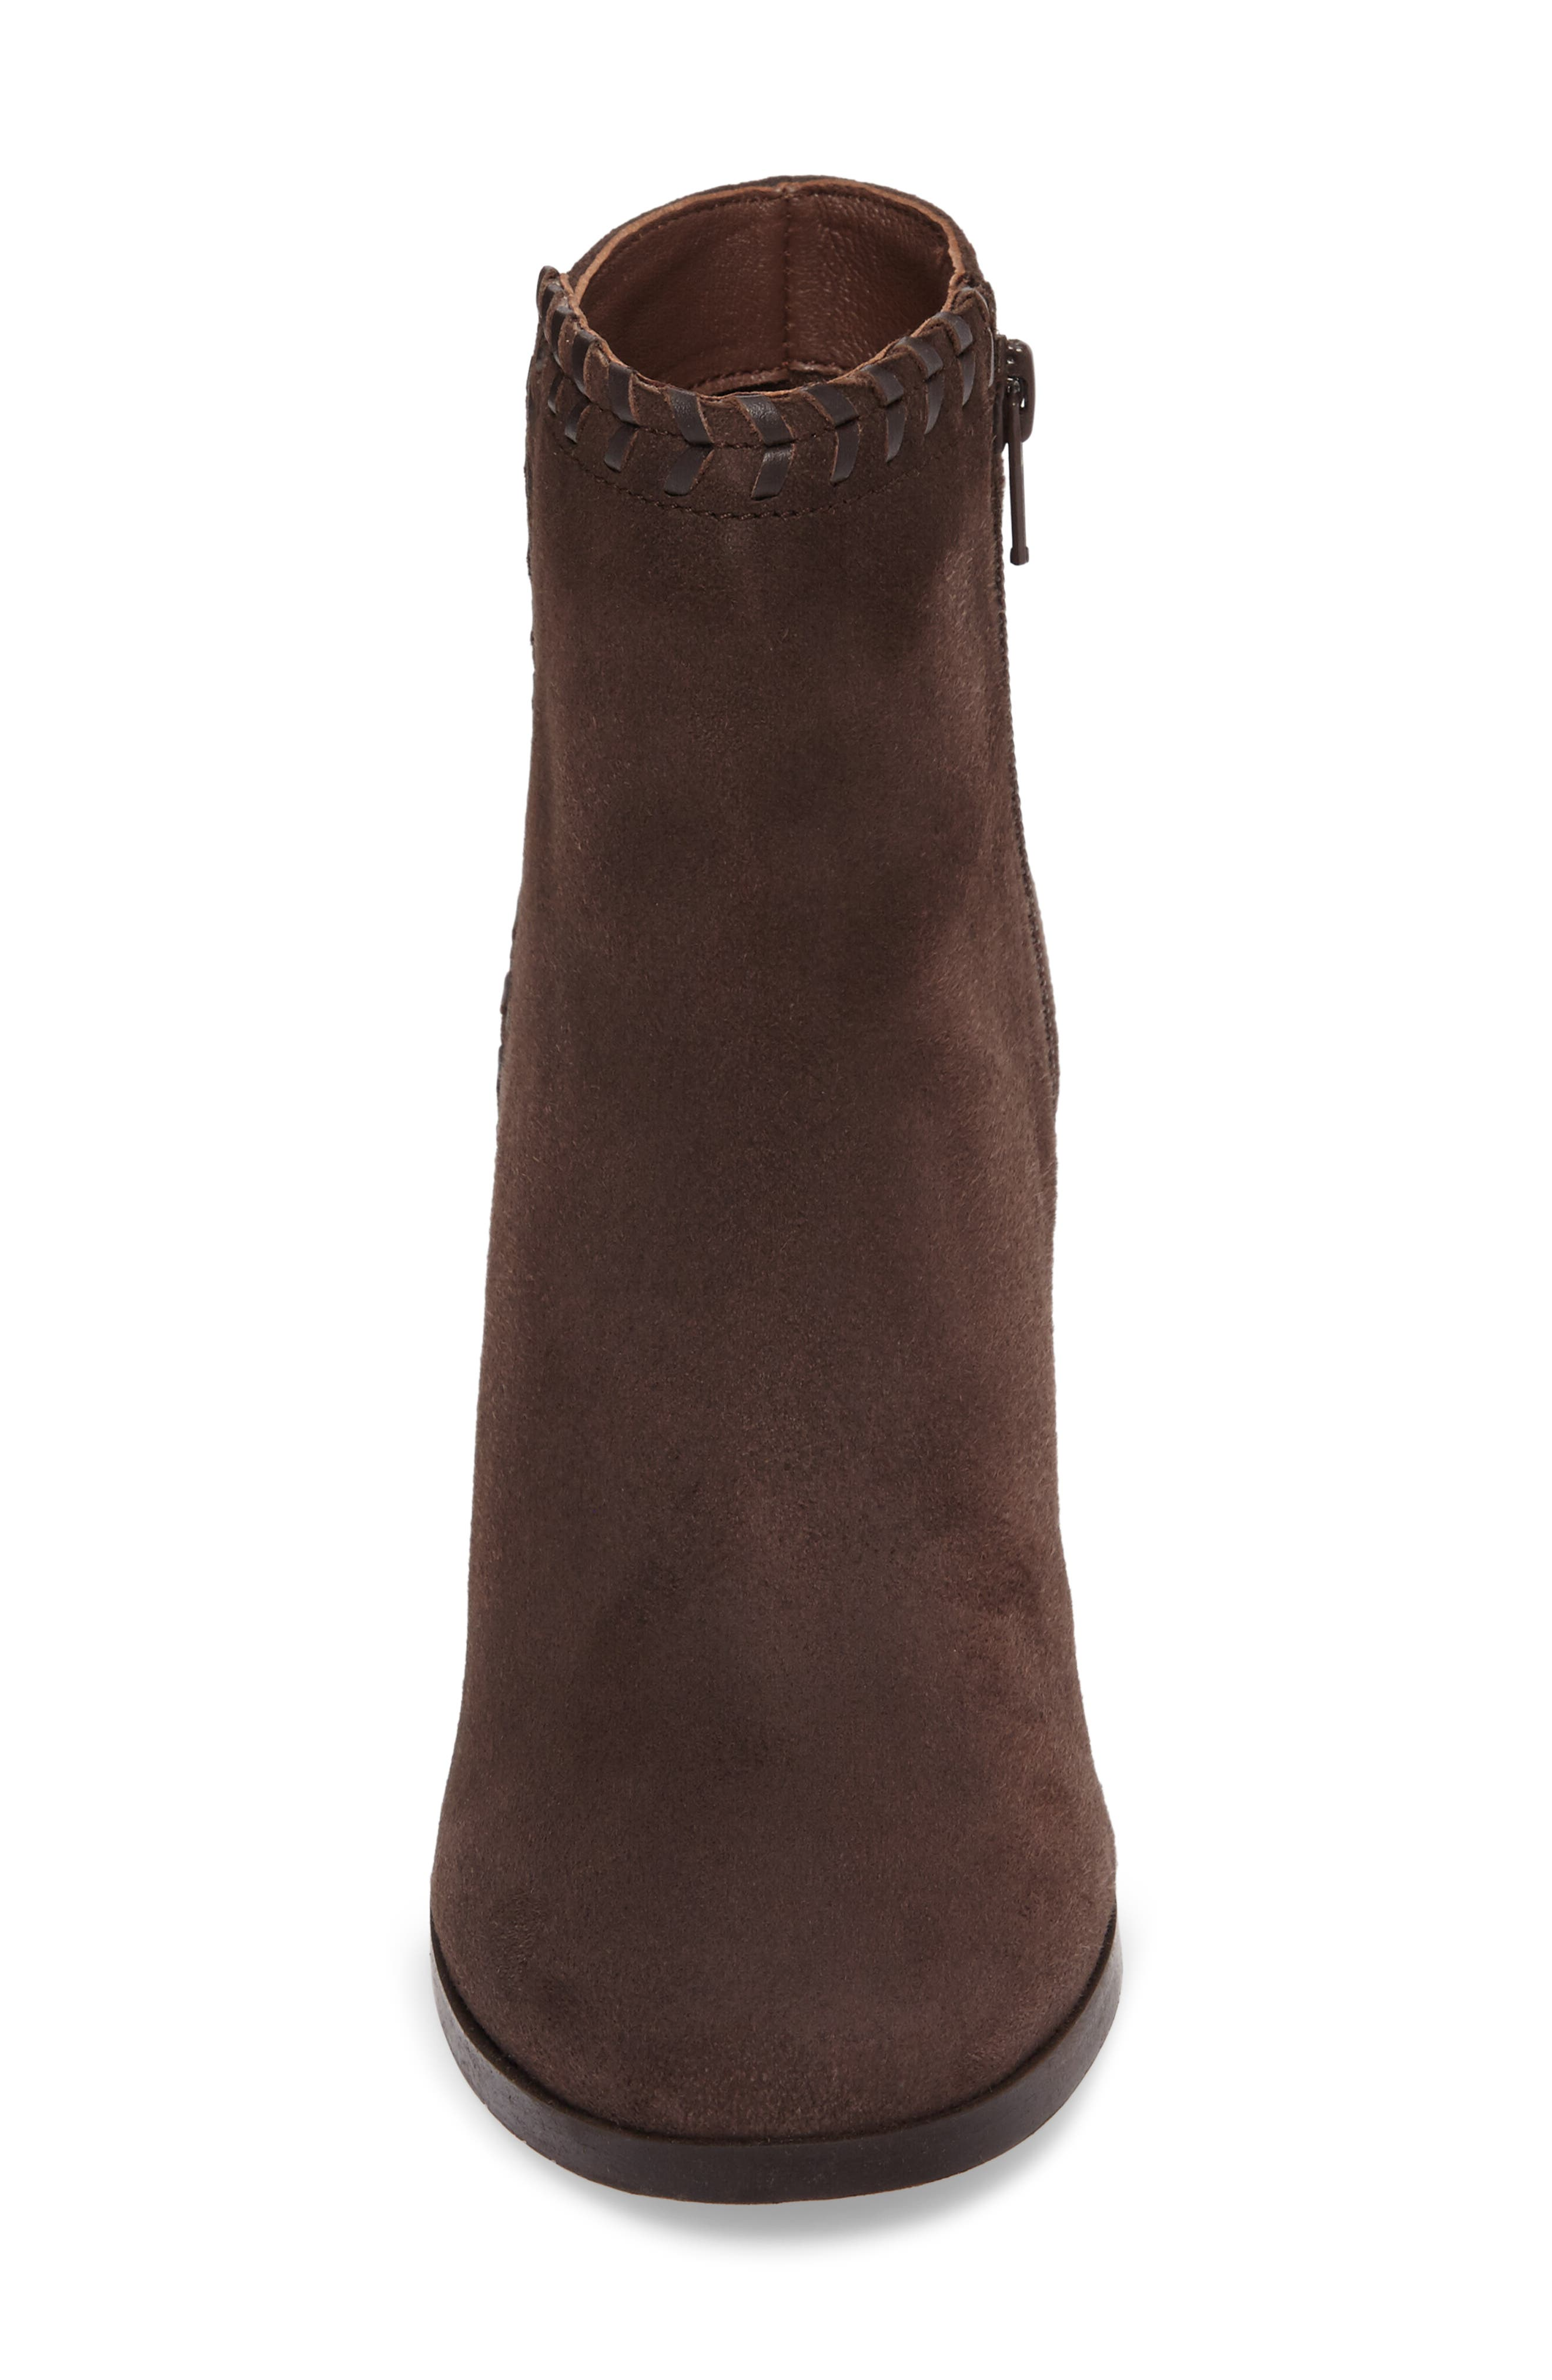 Heavenly Bootie,                             Alternate thumbnail 4, color,                             Taupe Suede